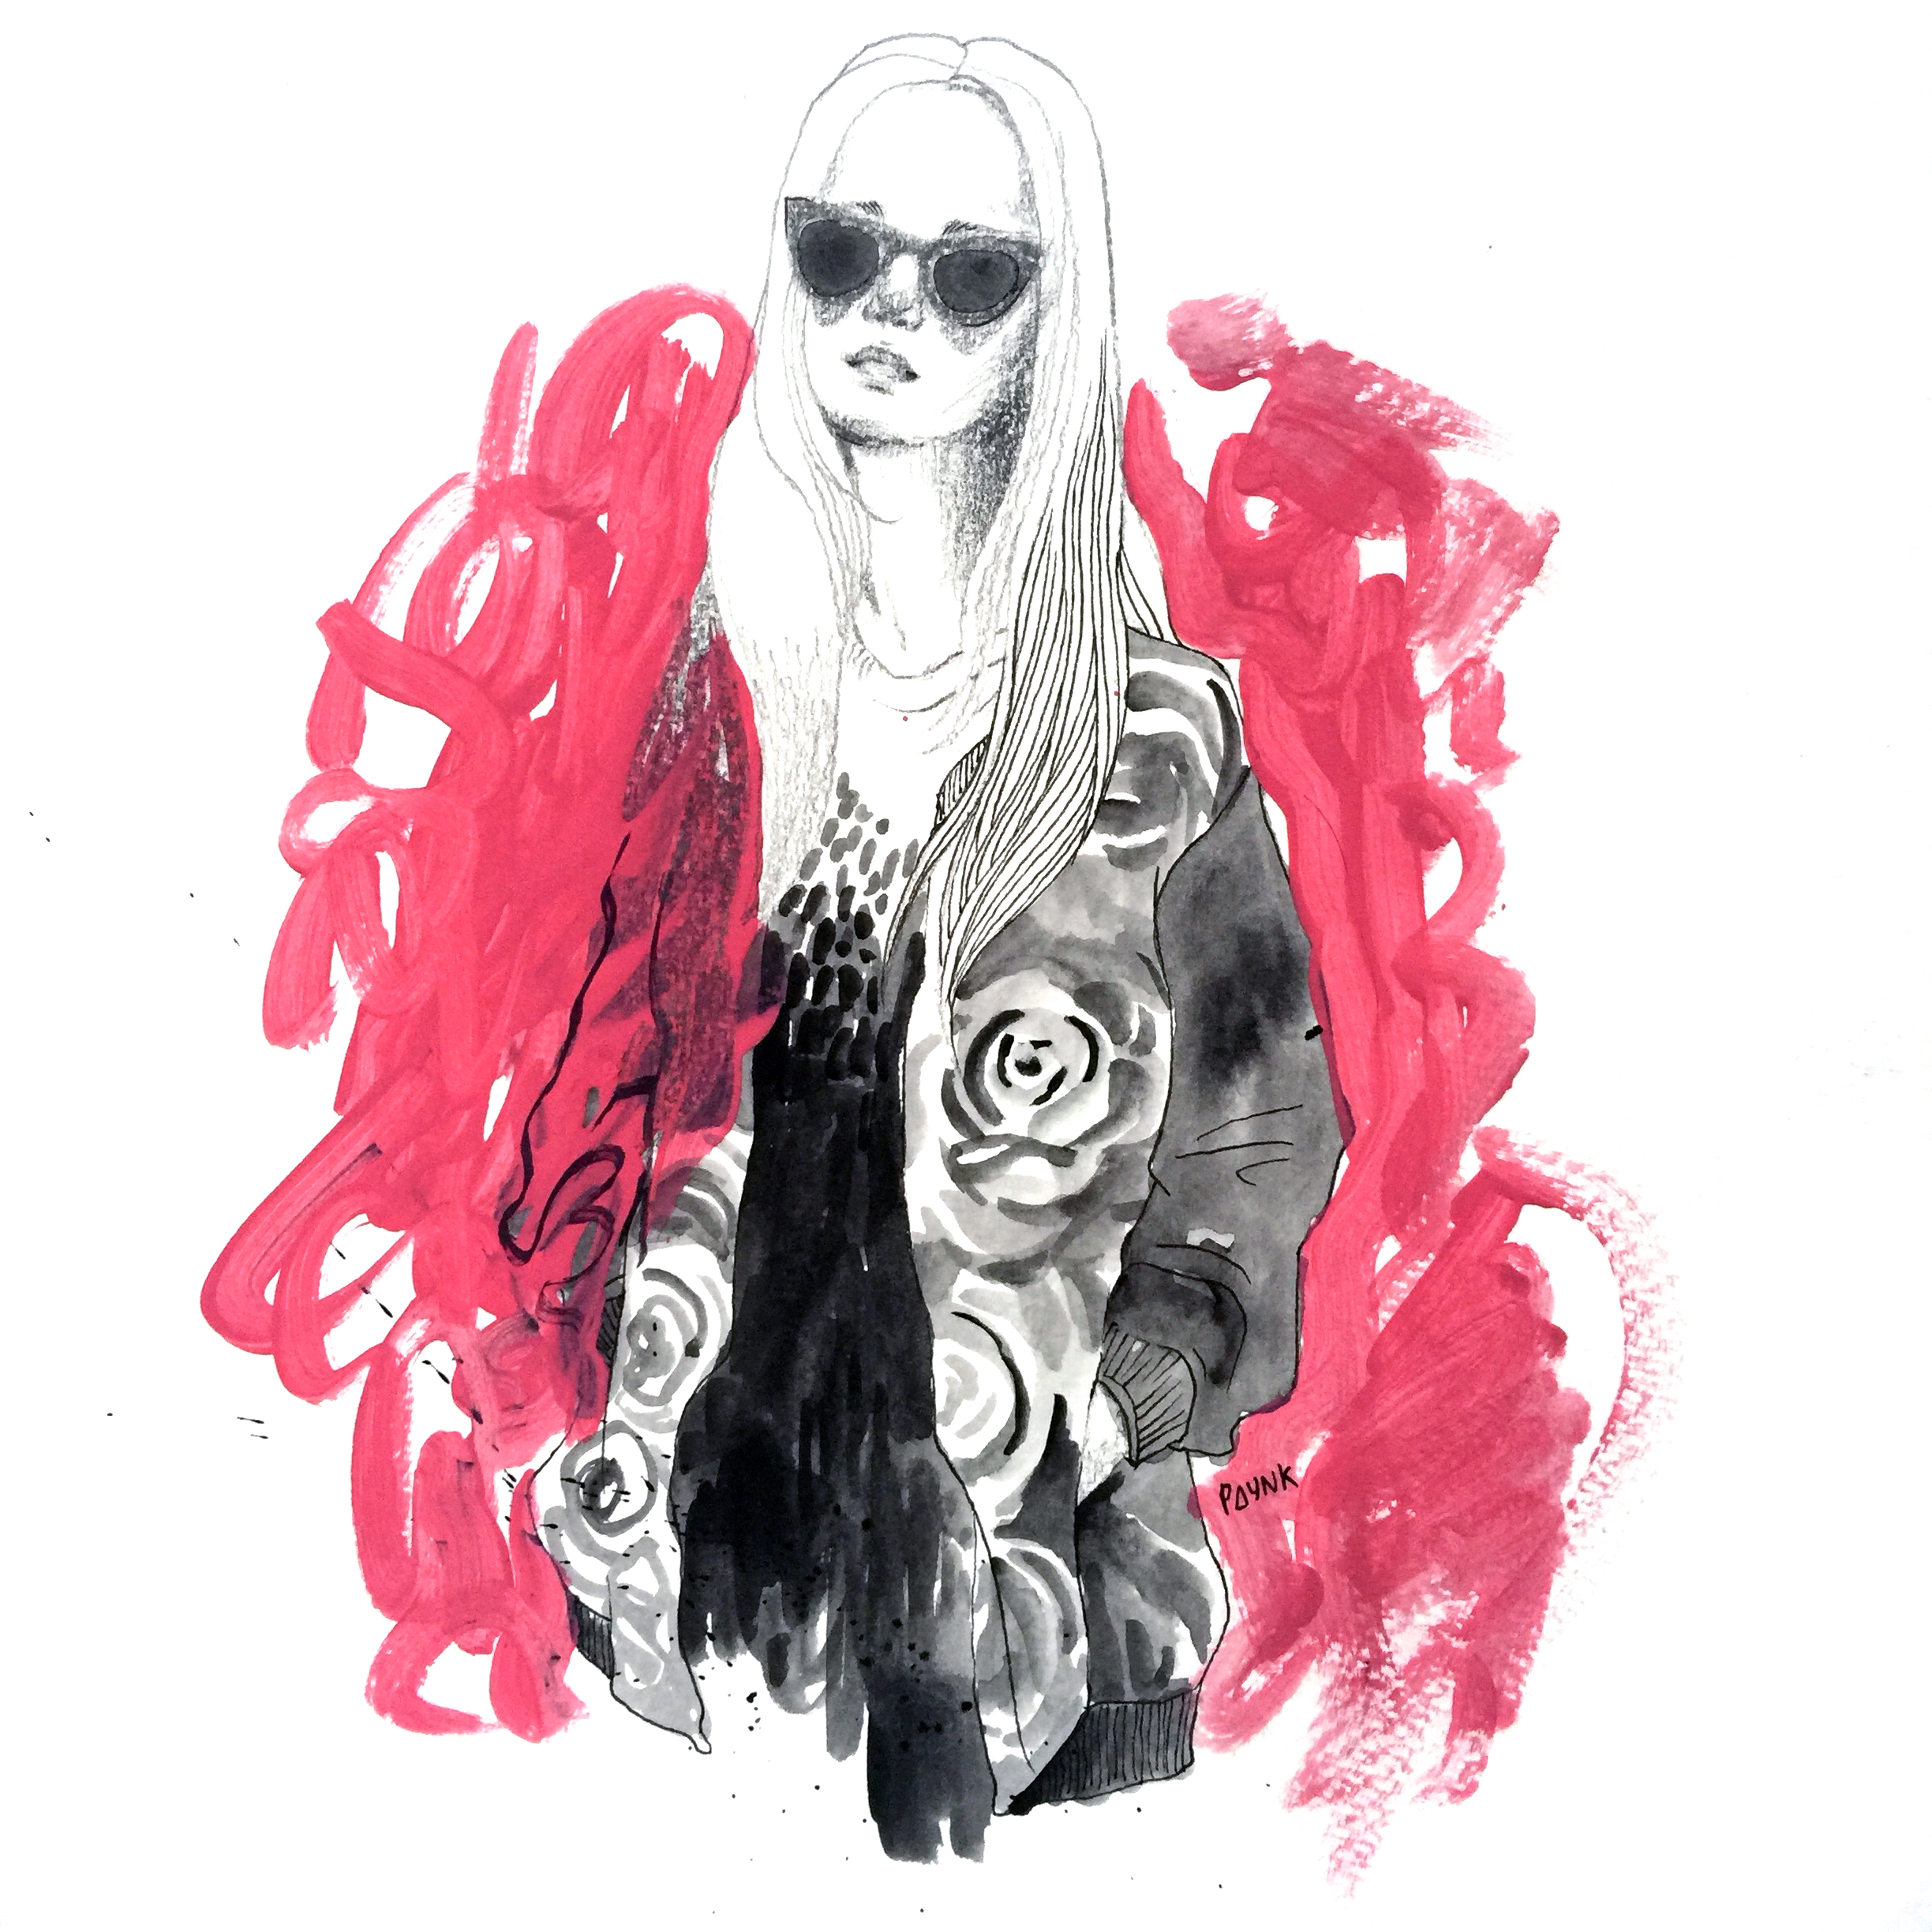 Ellie   Didn't get to speak to her much because 1. I was rushing off 2. she was very pretty I was very shyyyyy. She was working at Depression and she chose to put on this B&W roses jacket from their store for me to take pictures and draw. Such fun to draw!